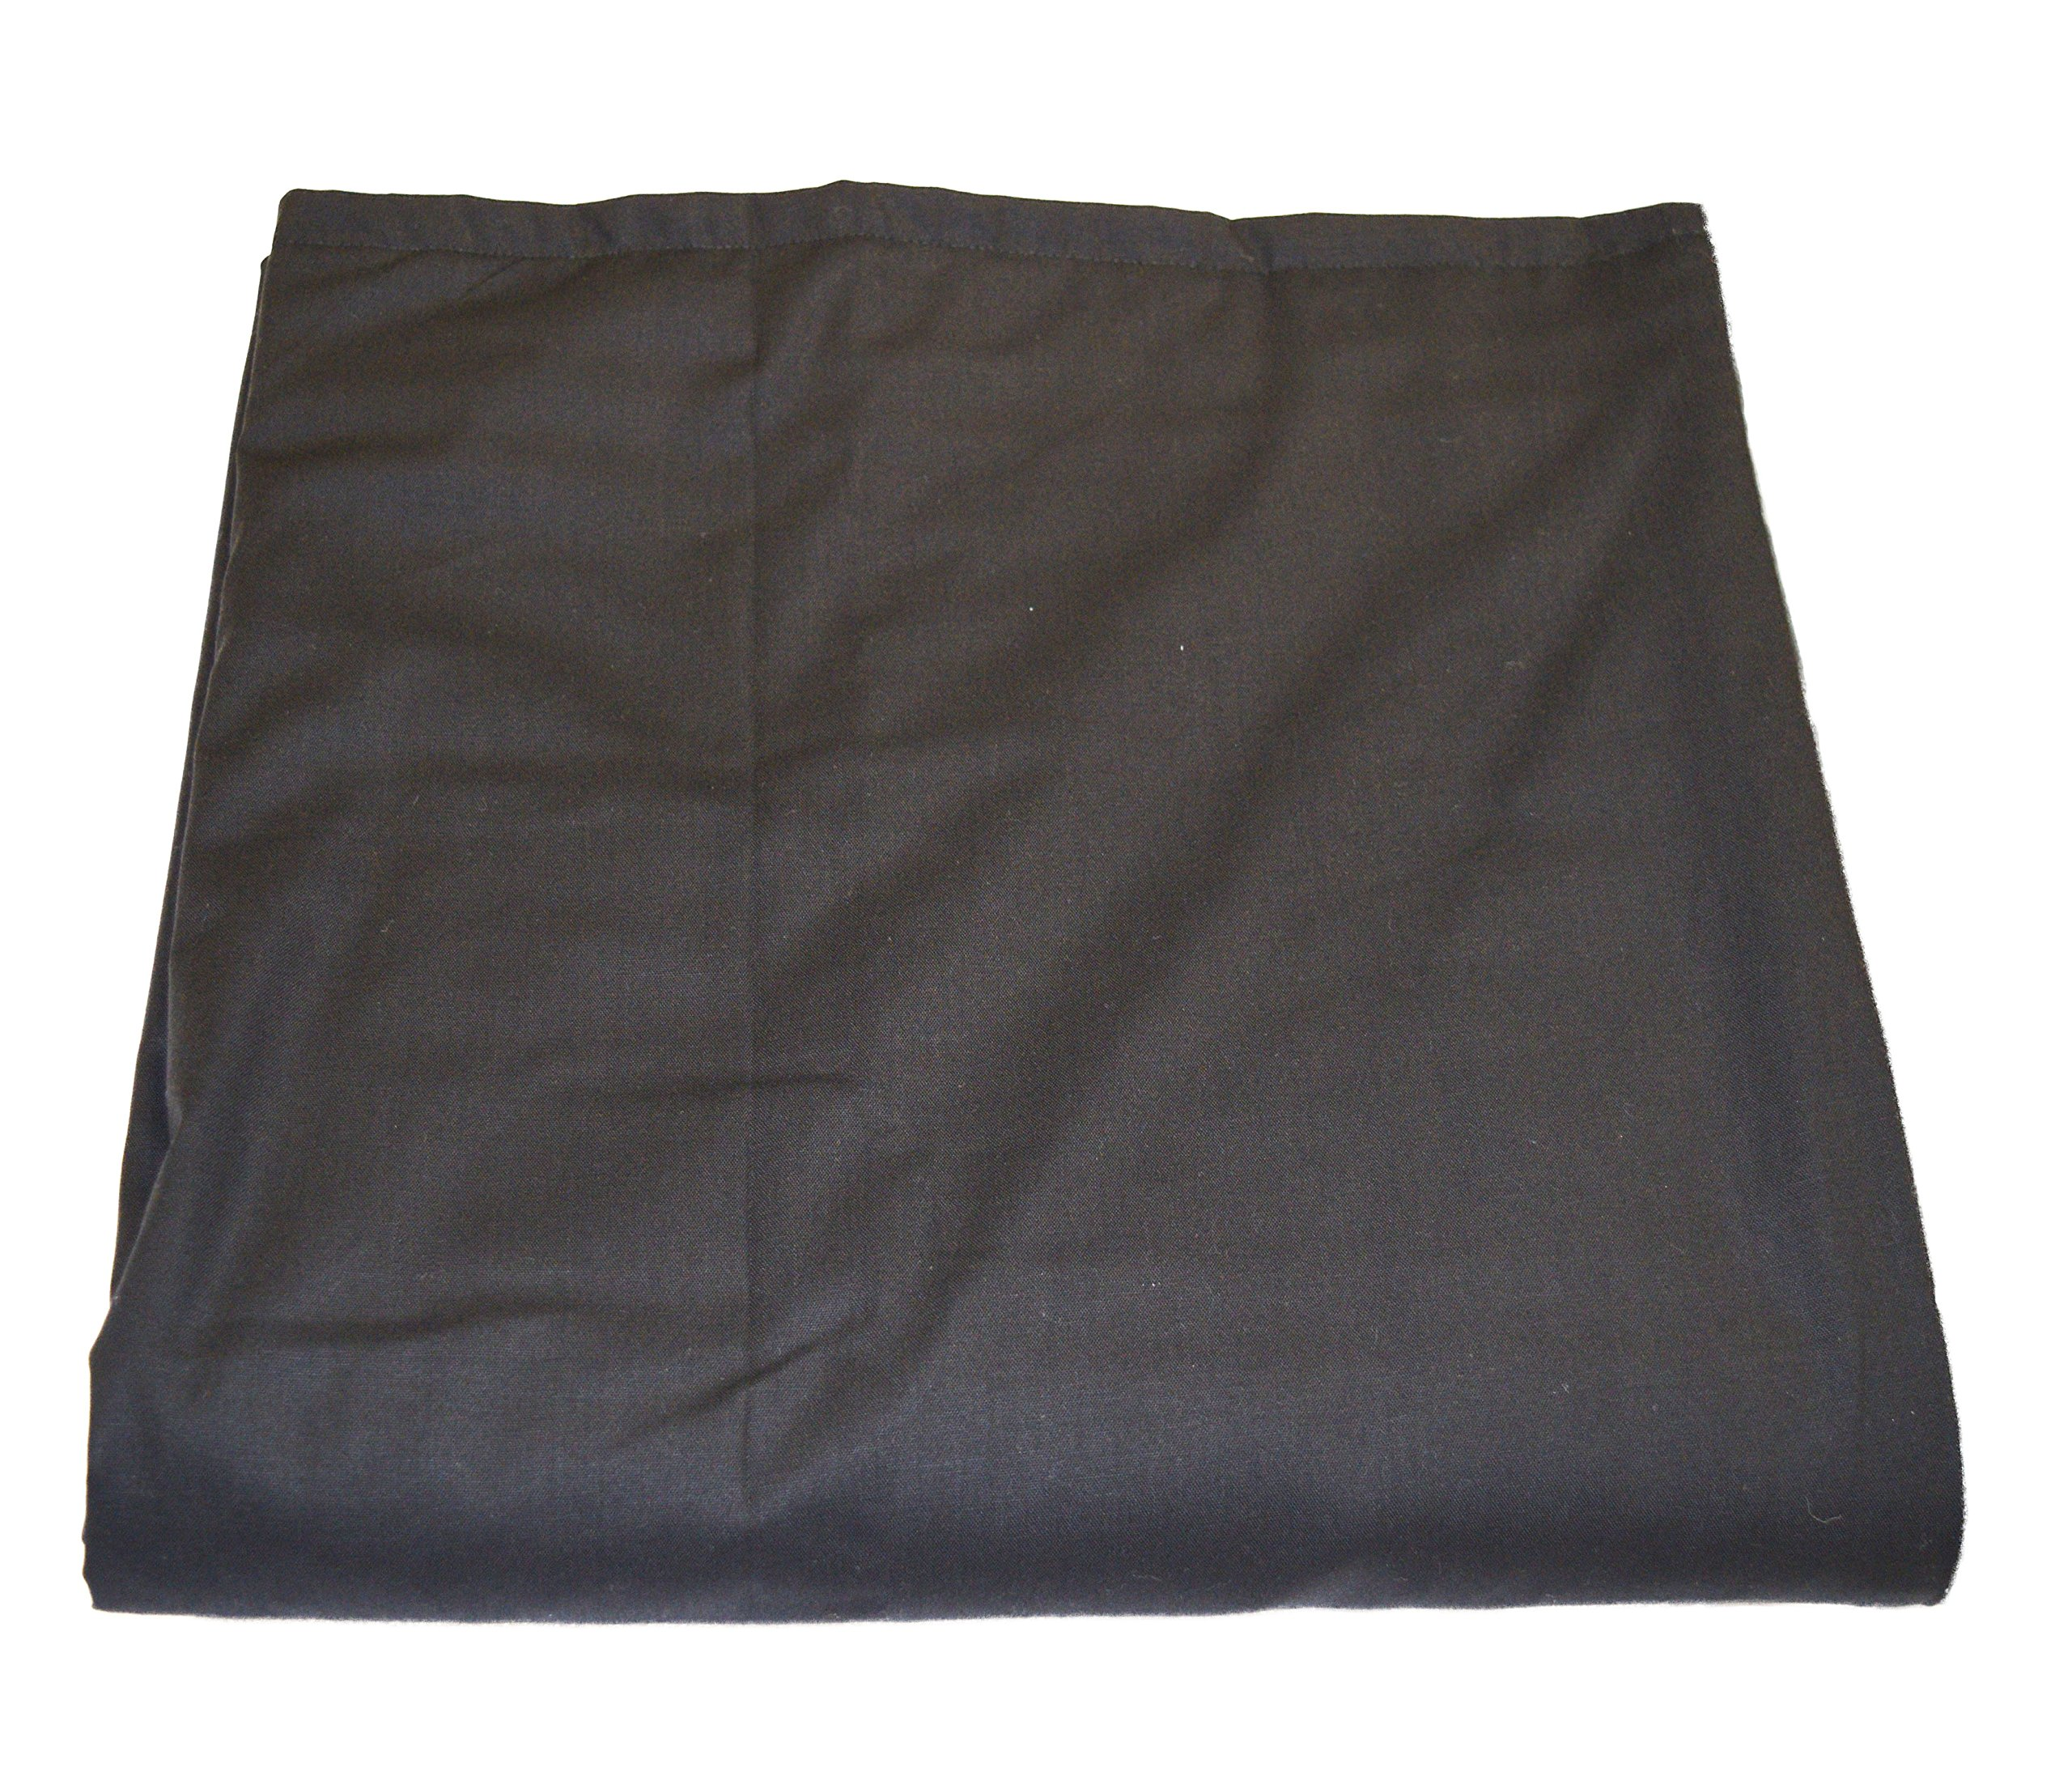 """WEIGHTED BLANKETS BY INDIA - Made in AMERICA - Weighted Blanket BLACK (7lb 60lb) 48""""x30"""" Made cool Cotton Flannel - 11 color choices -15 size weight options from 5–24lbs"""